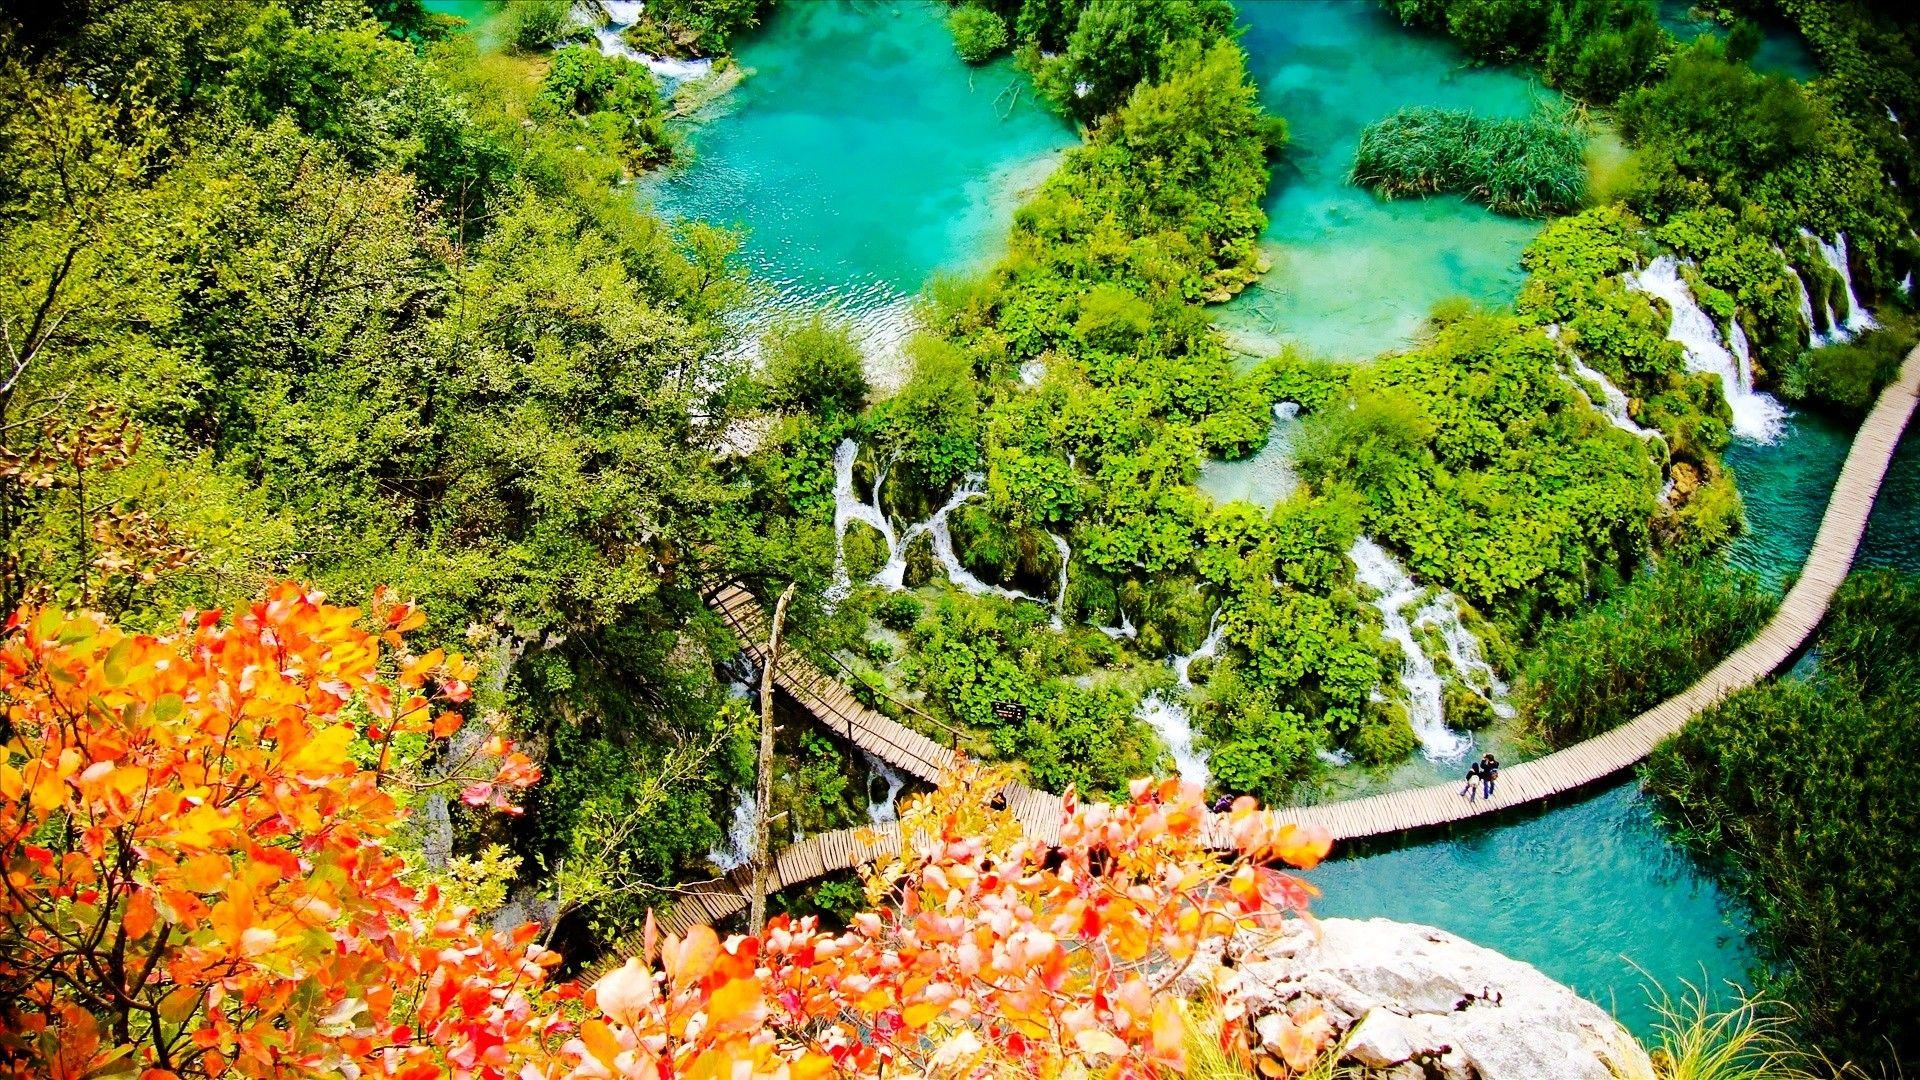 Another aspect of Croatia, the Plitvice Lakes